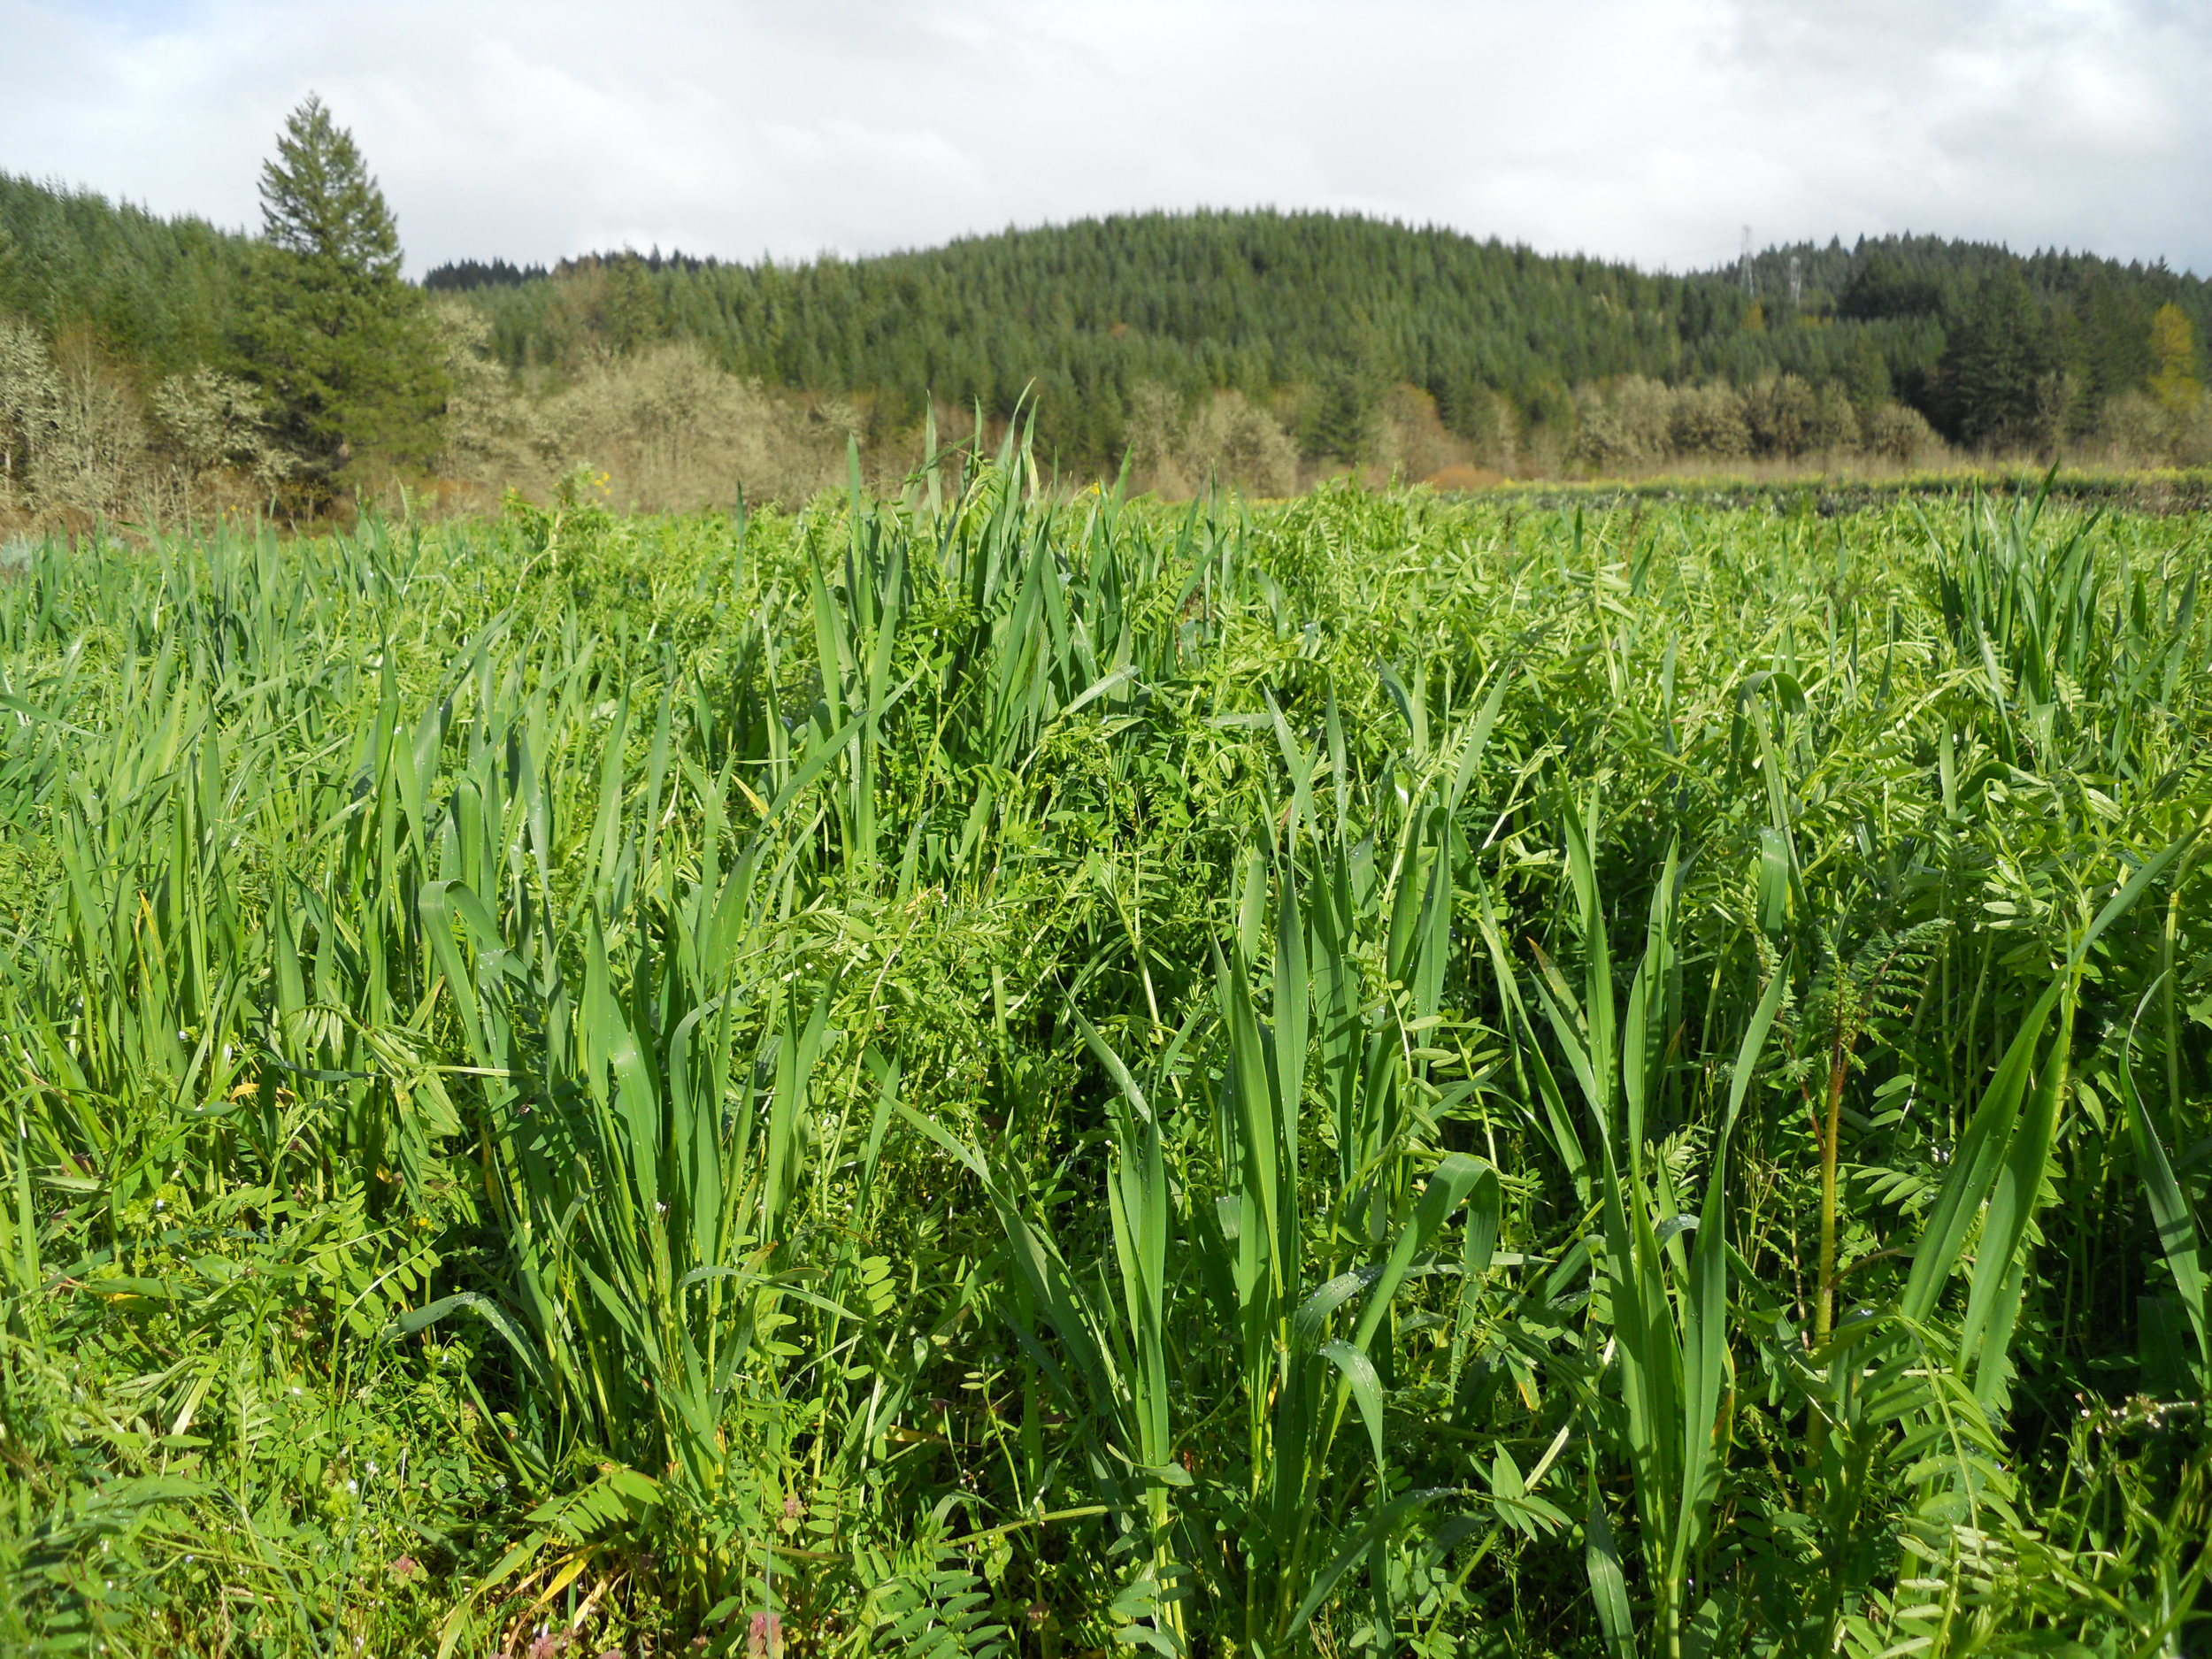 Growing a grass and a legume together in a cover crop mix enhances each plant's usefulness.  The wheat and vetch compete, inspiring each plant to grow taller than it would alone, and the wheat provides a trellis for the vetch.